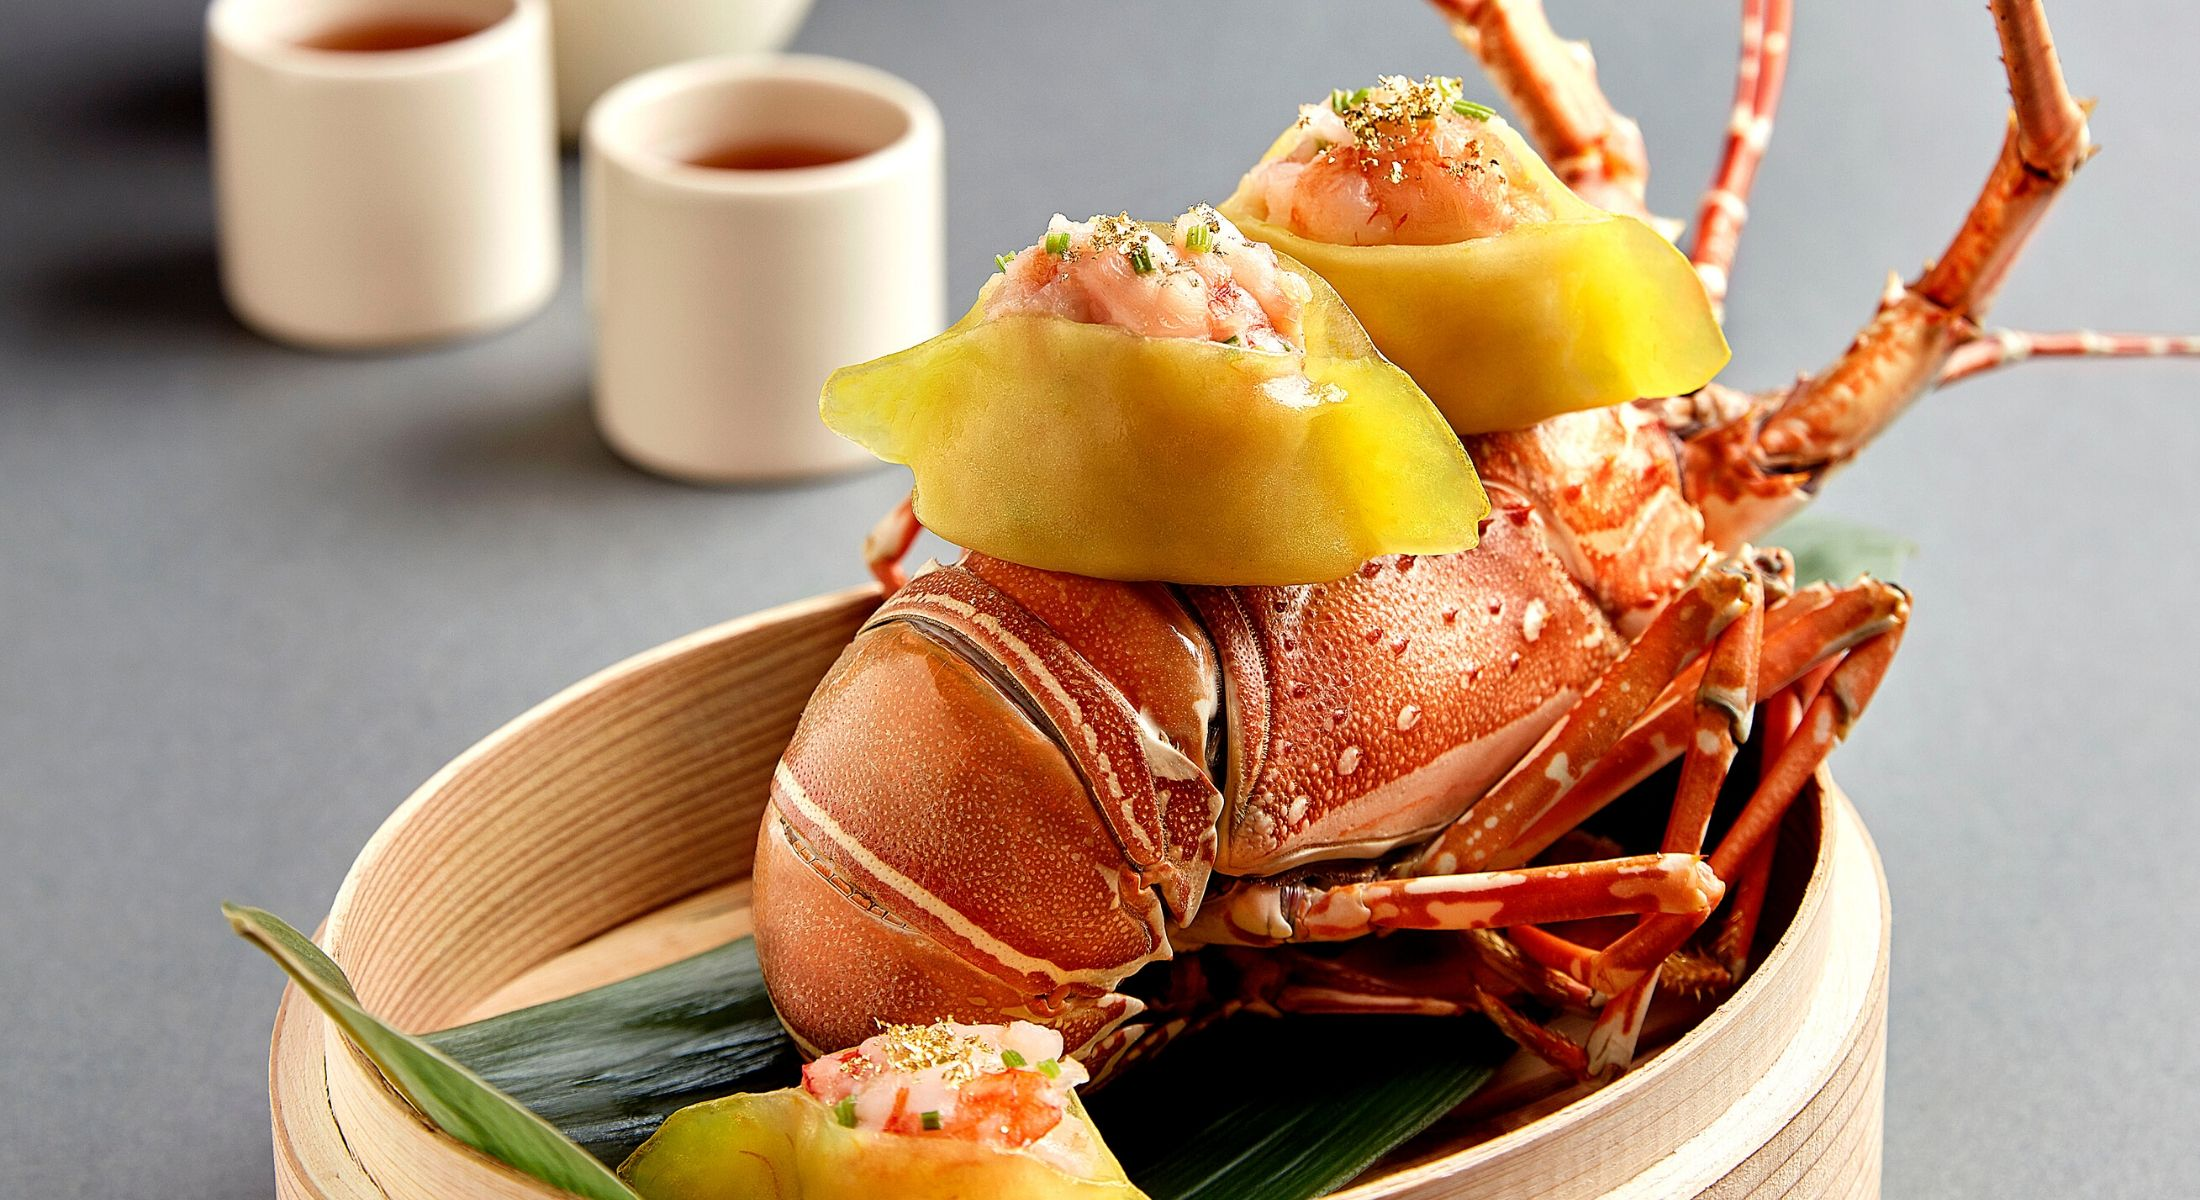 Fairmont Singapore Teochew Style Gold Leaf Lobster Dumpling